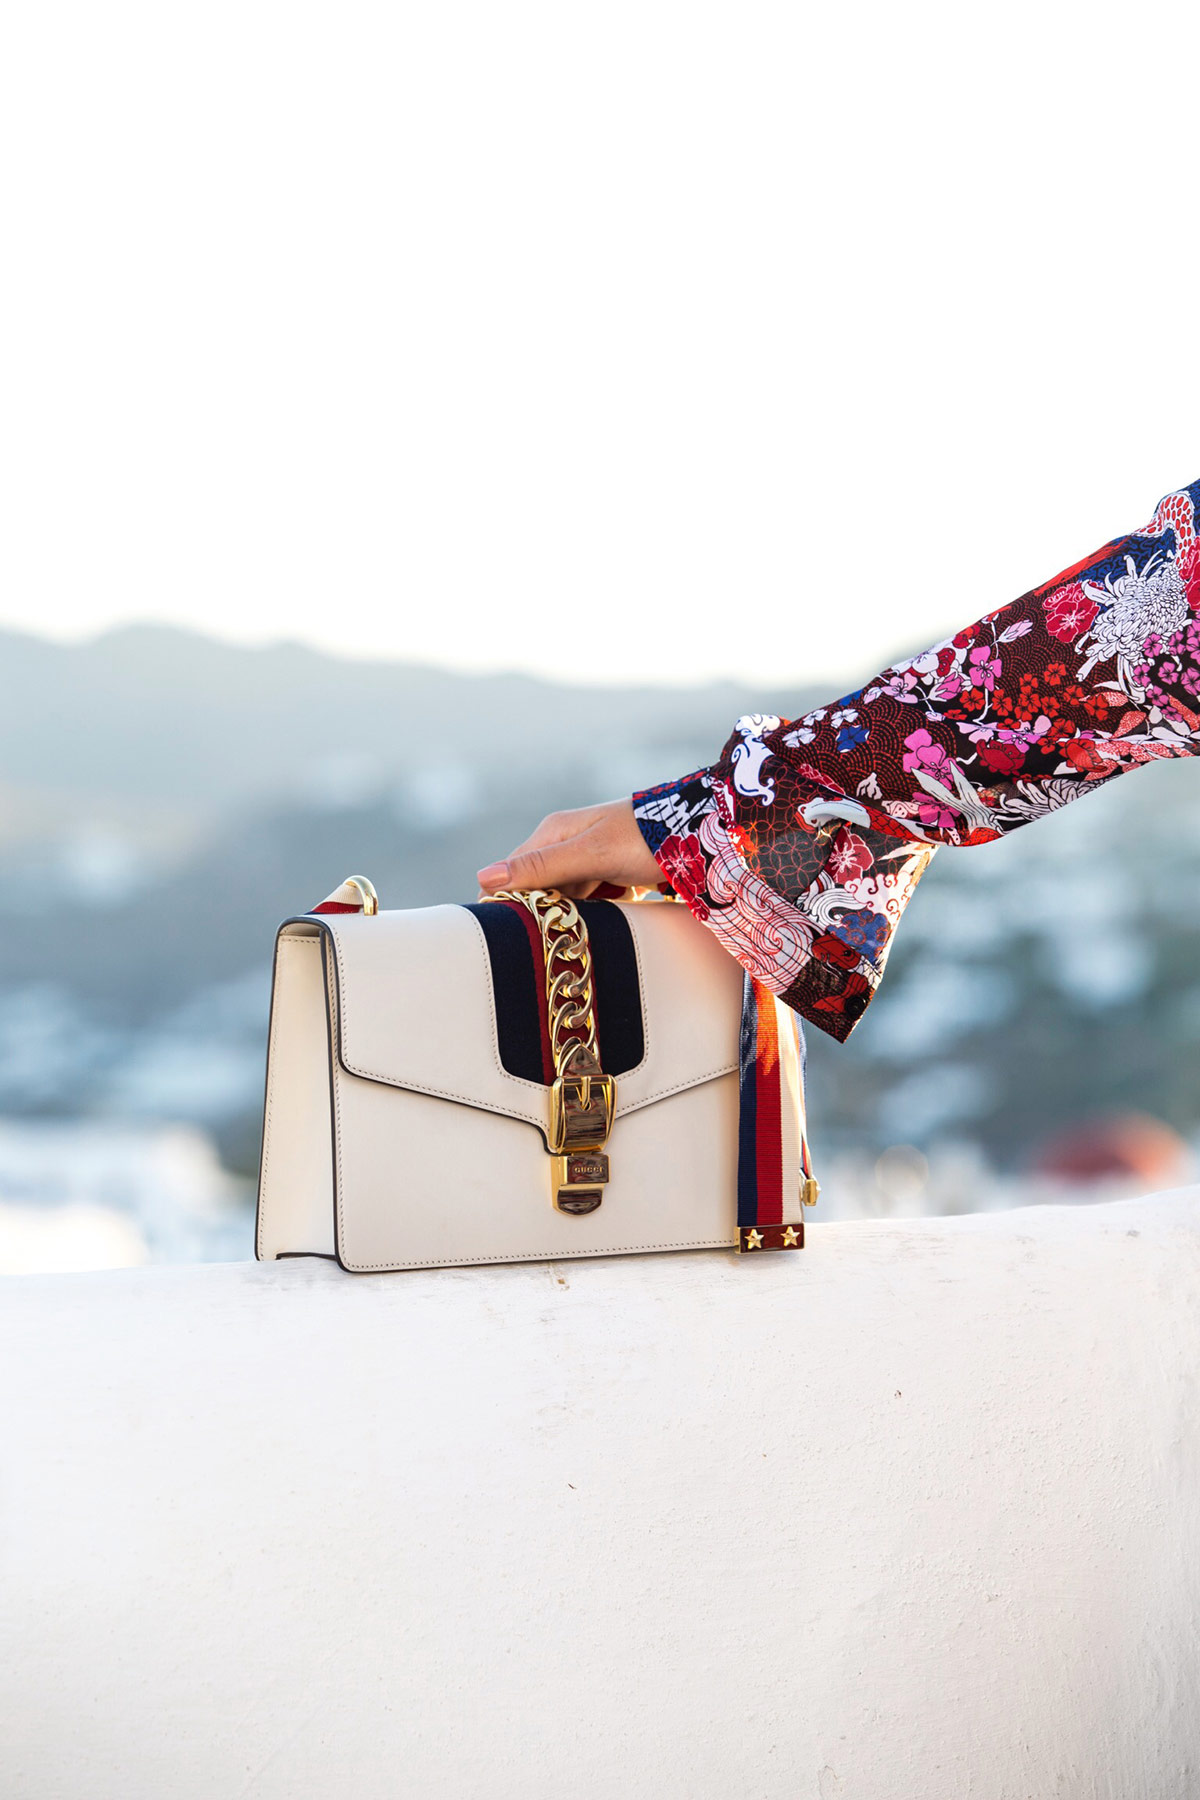 Gucci Sylvie Bag worn by Stella Asteria - Fashion & Lifestyle Blogger